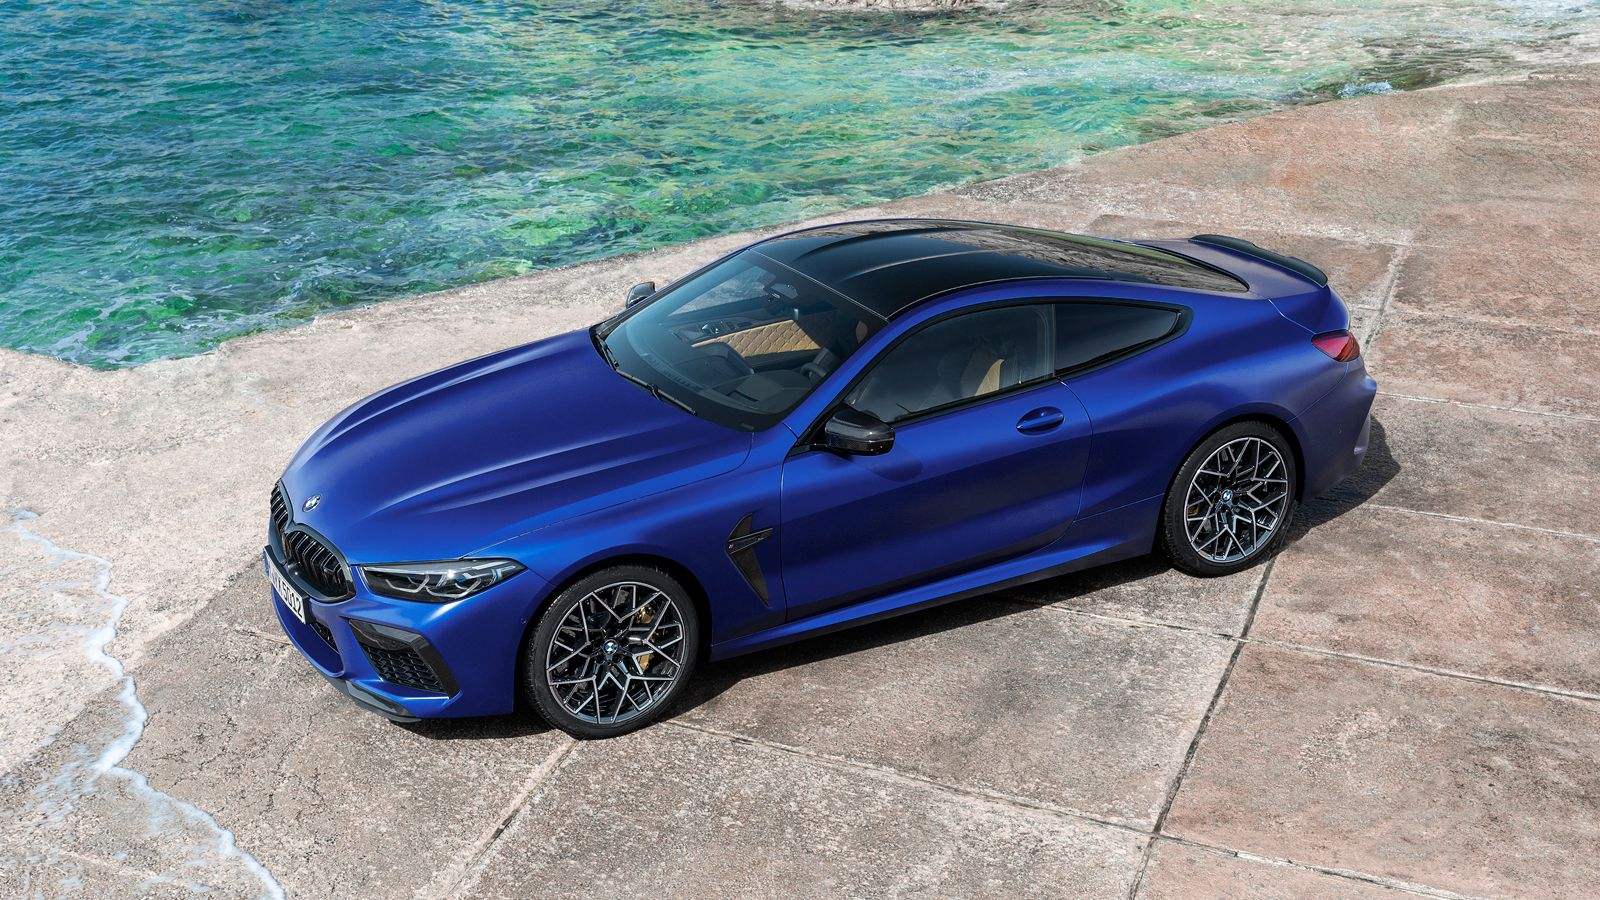 2020 Bmw M8 First Drive Pushing The Limits Of Mechanical And Electronic Performance